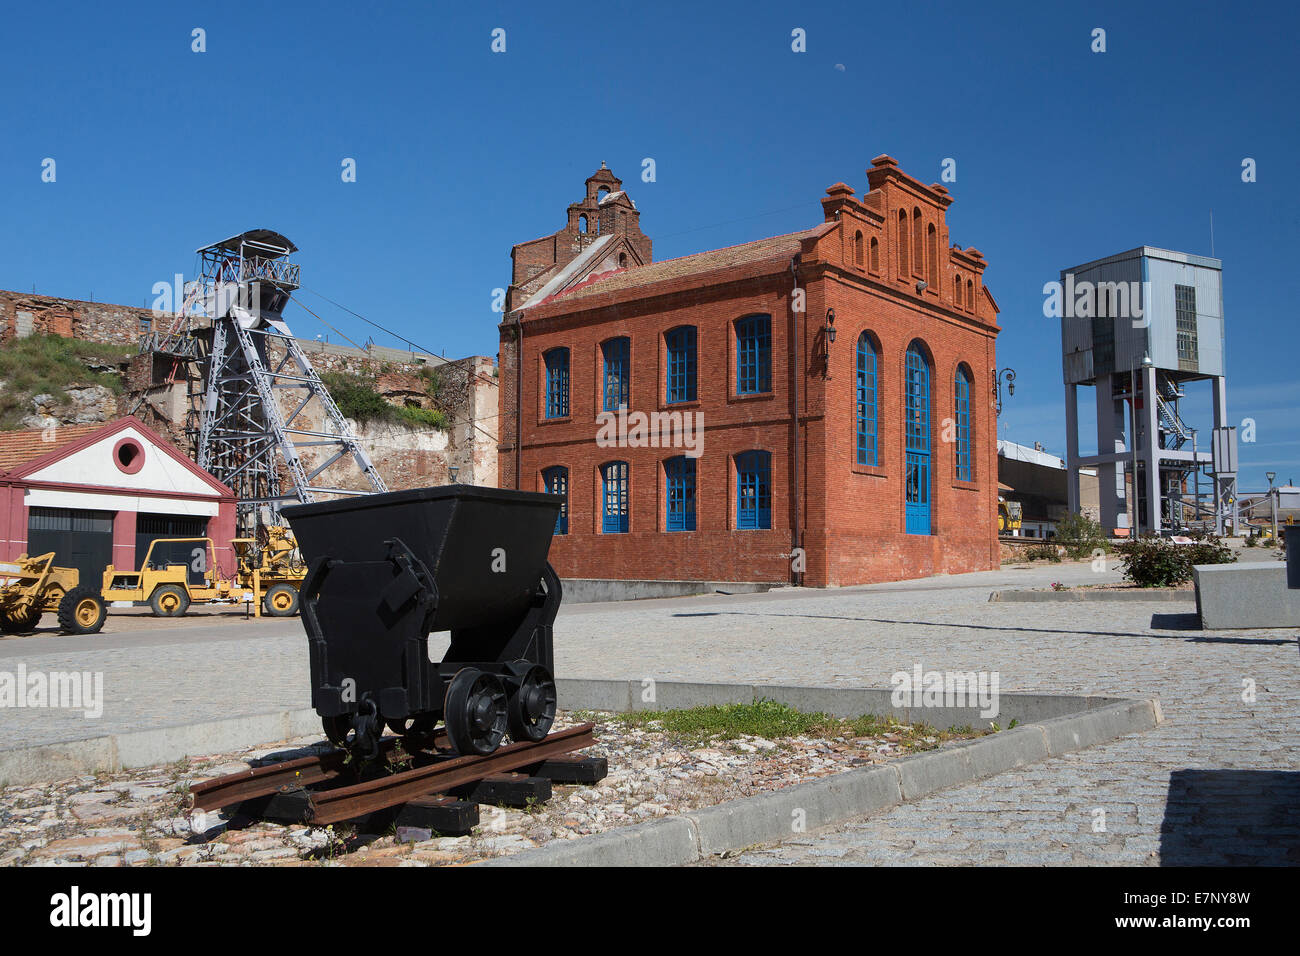 industry, world heritage, Unesco, Almaden, Castile La Mancha, City, Ciudad Real, Mercury, Mines, Spain, Europe, - Stock Image